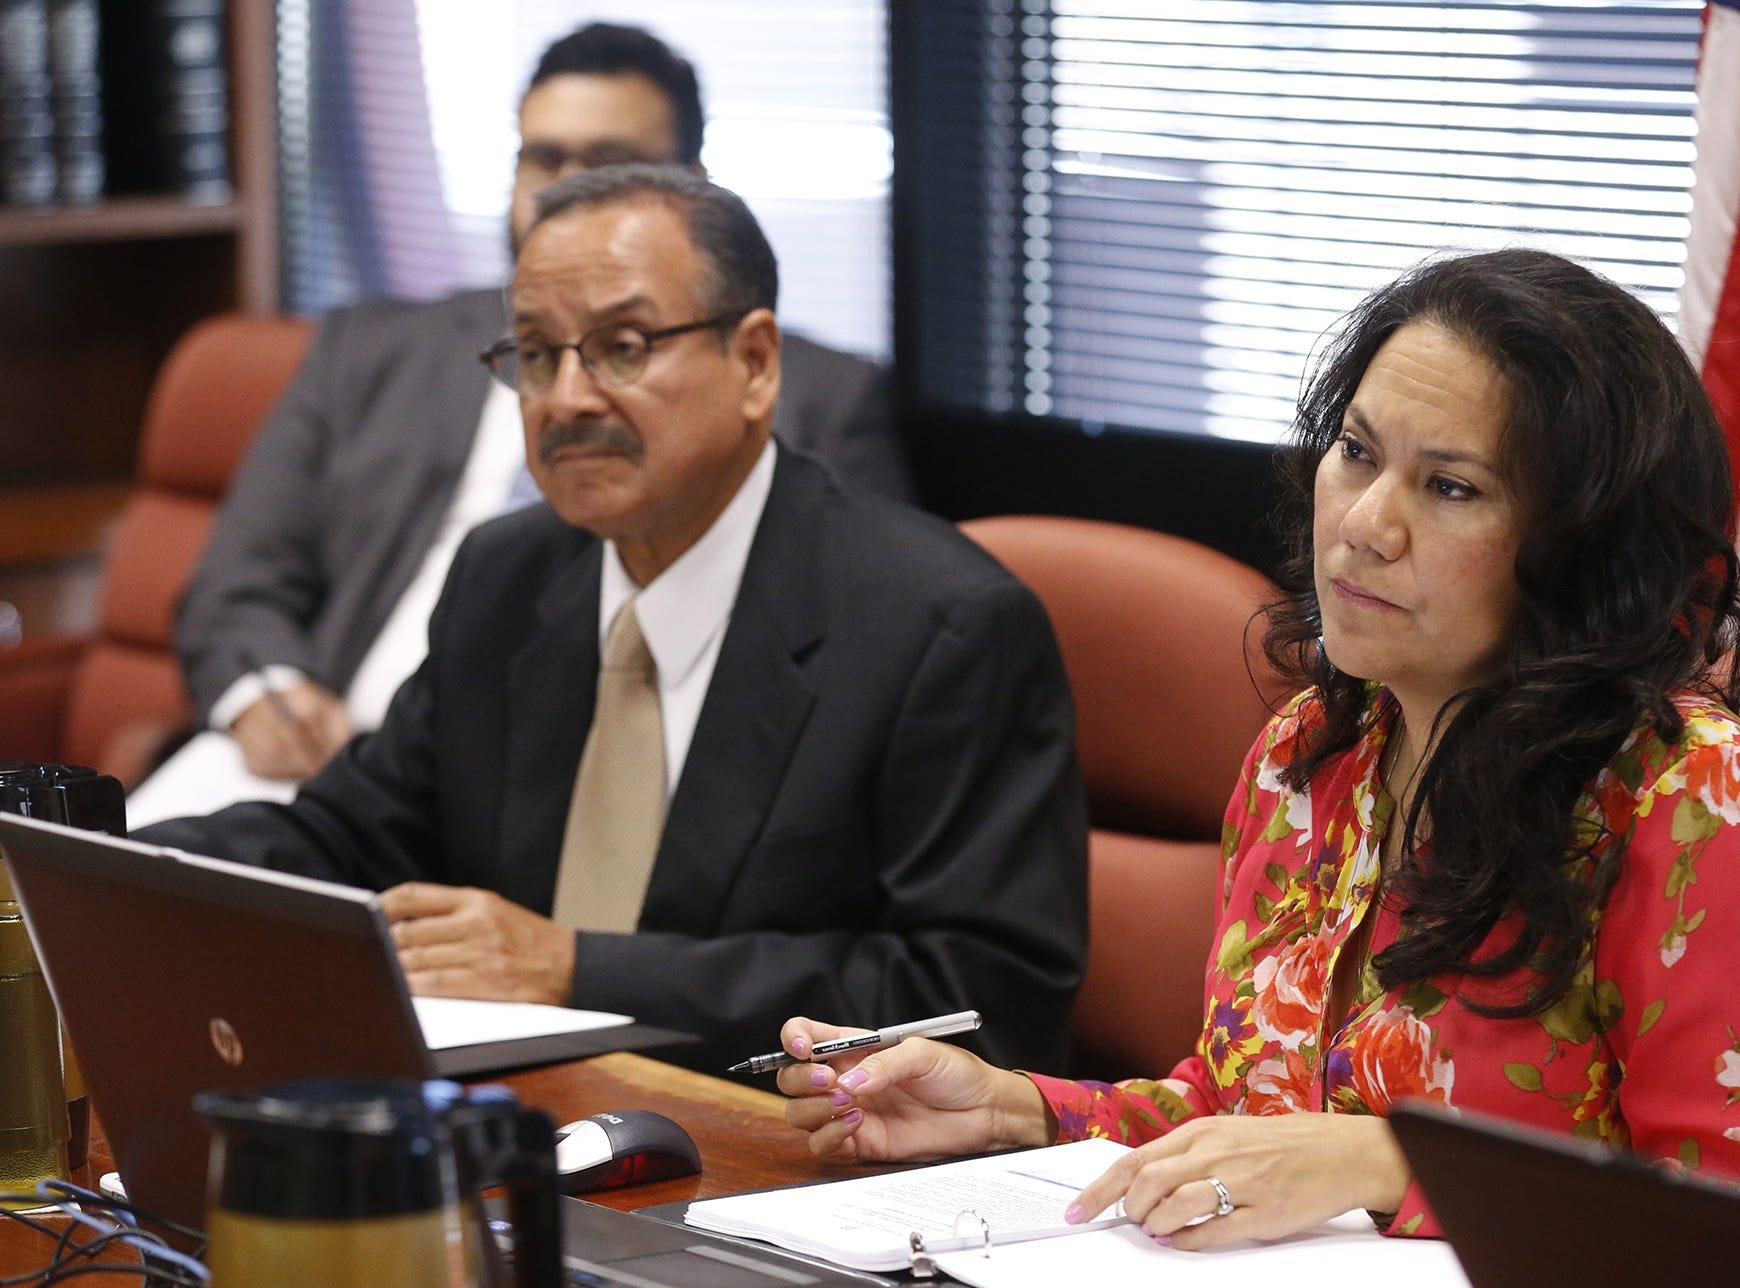 County Judge Veronica Escobar and Commissioner Carlos Leon listen in as a presentation is made by a county department head.